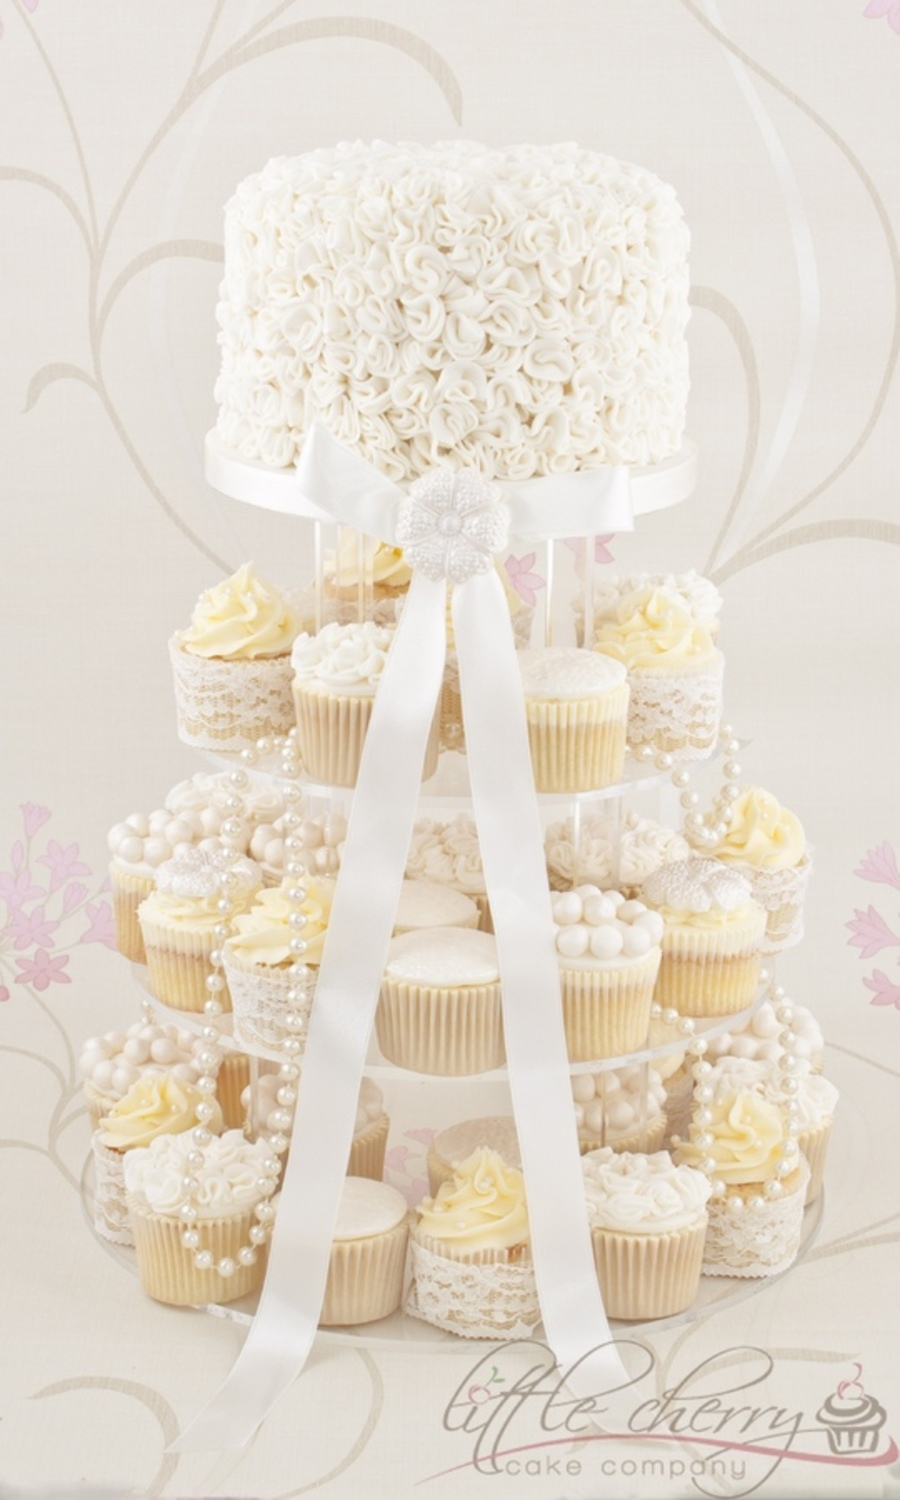 Top Cupcake Towers - CakeCentral.com